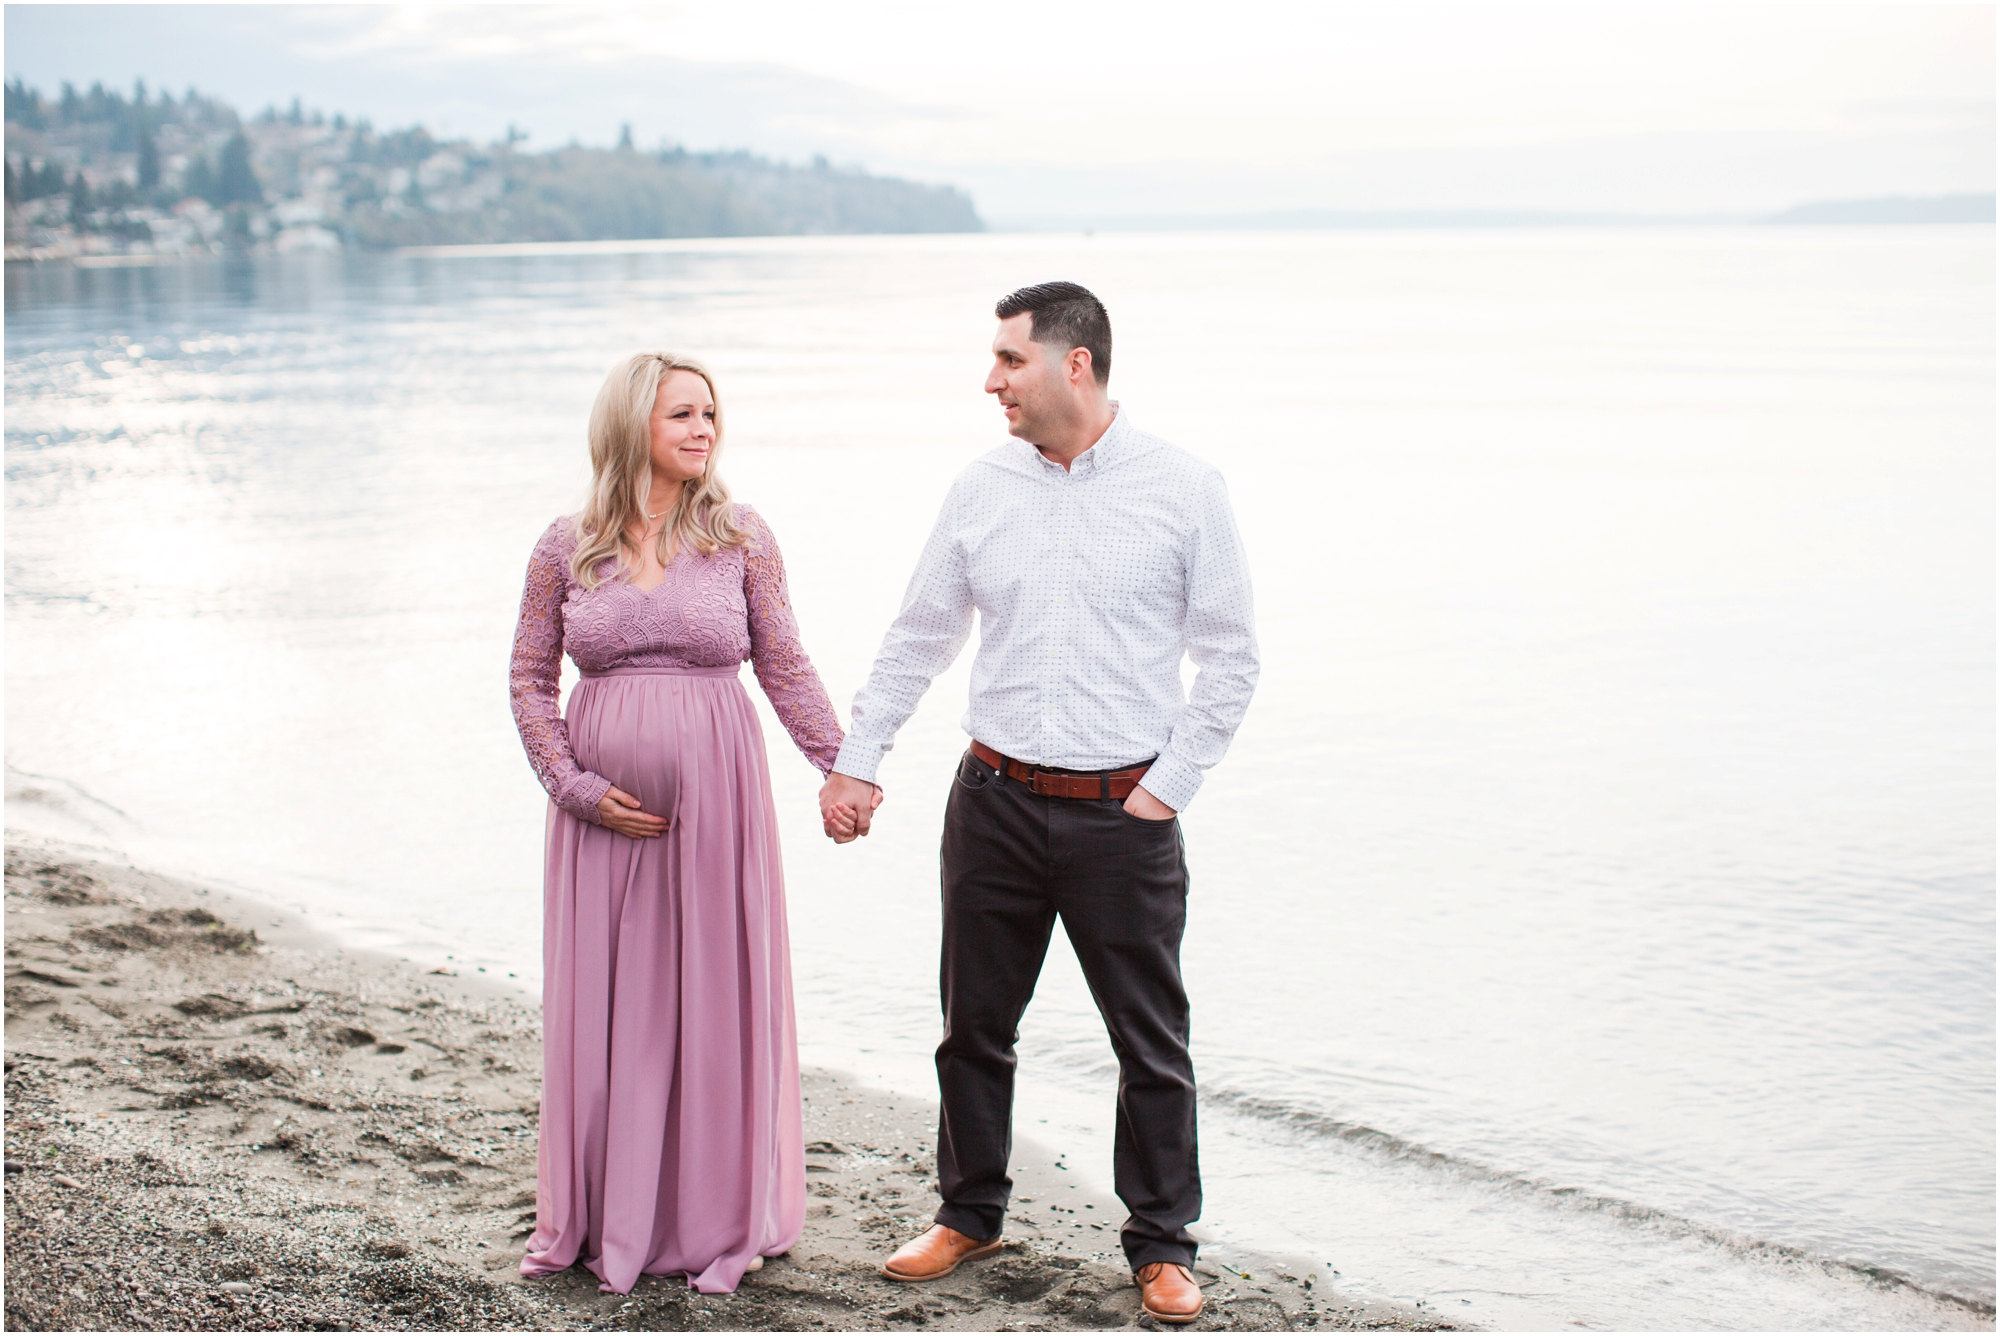 Maternity photos by Briana Calderon Photography based in the Greater Seattle & Tacoma, WA_0987.jpg